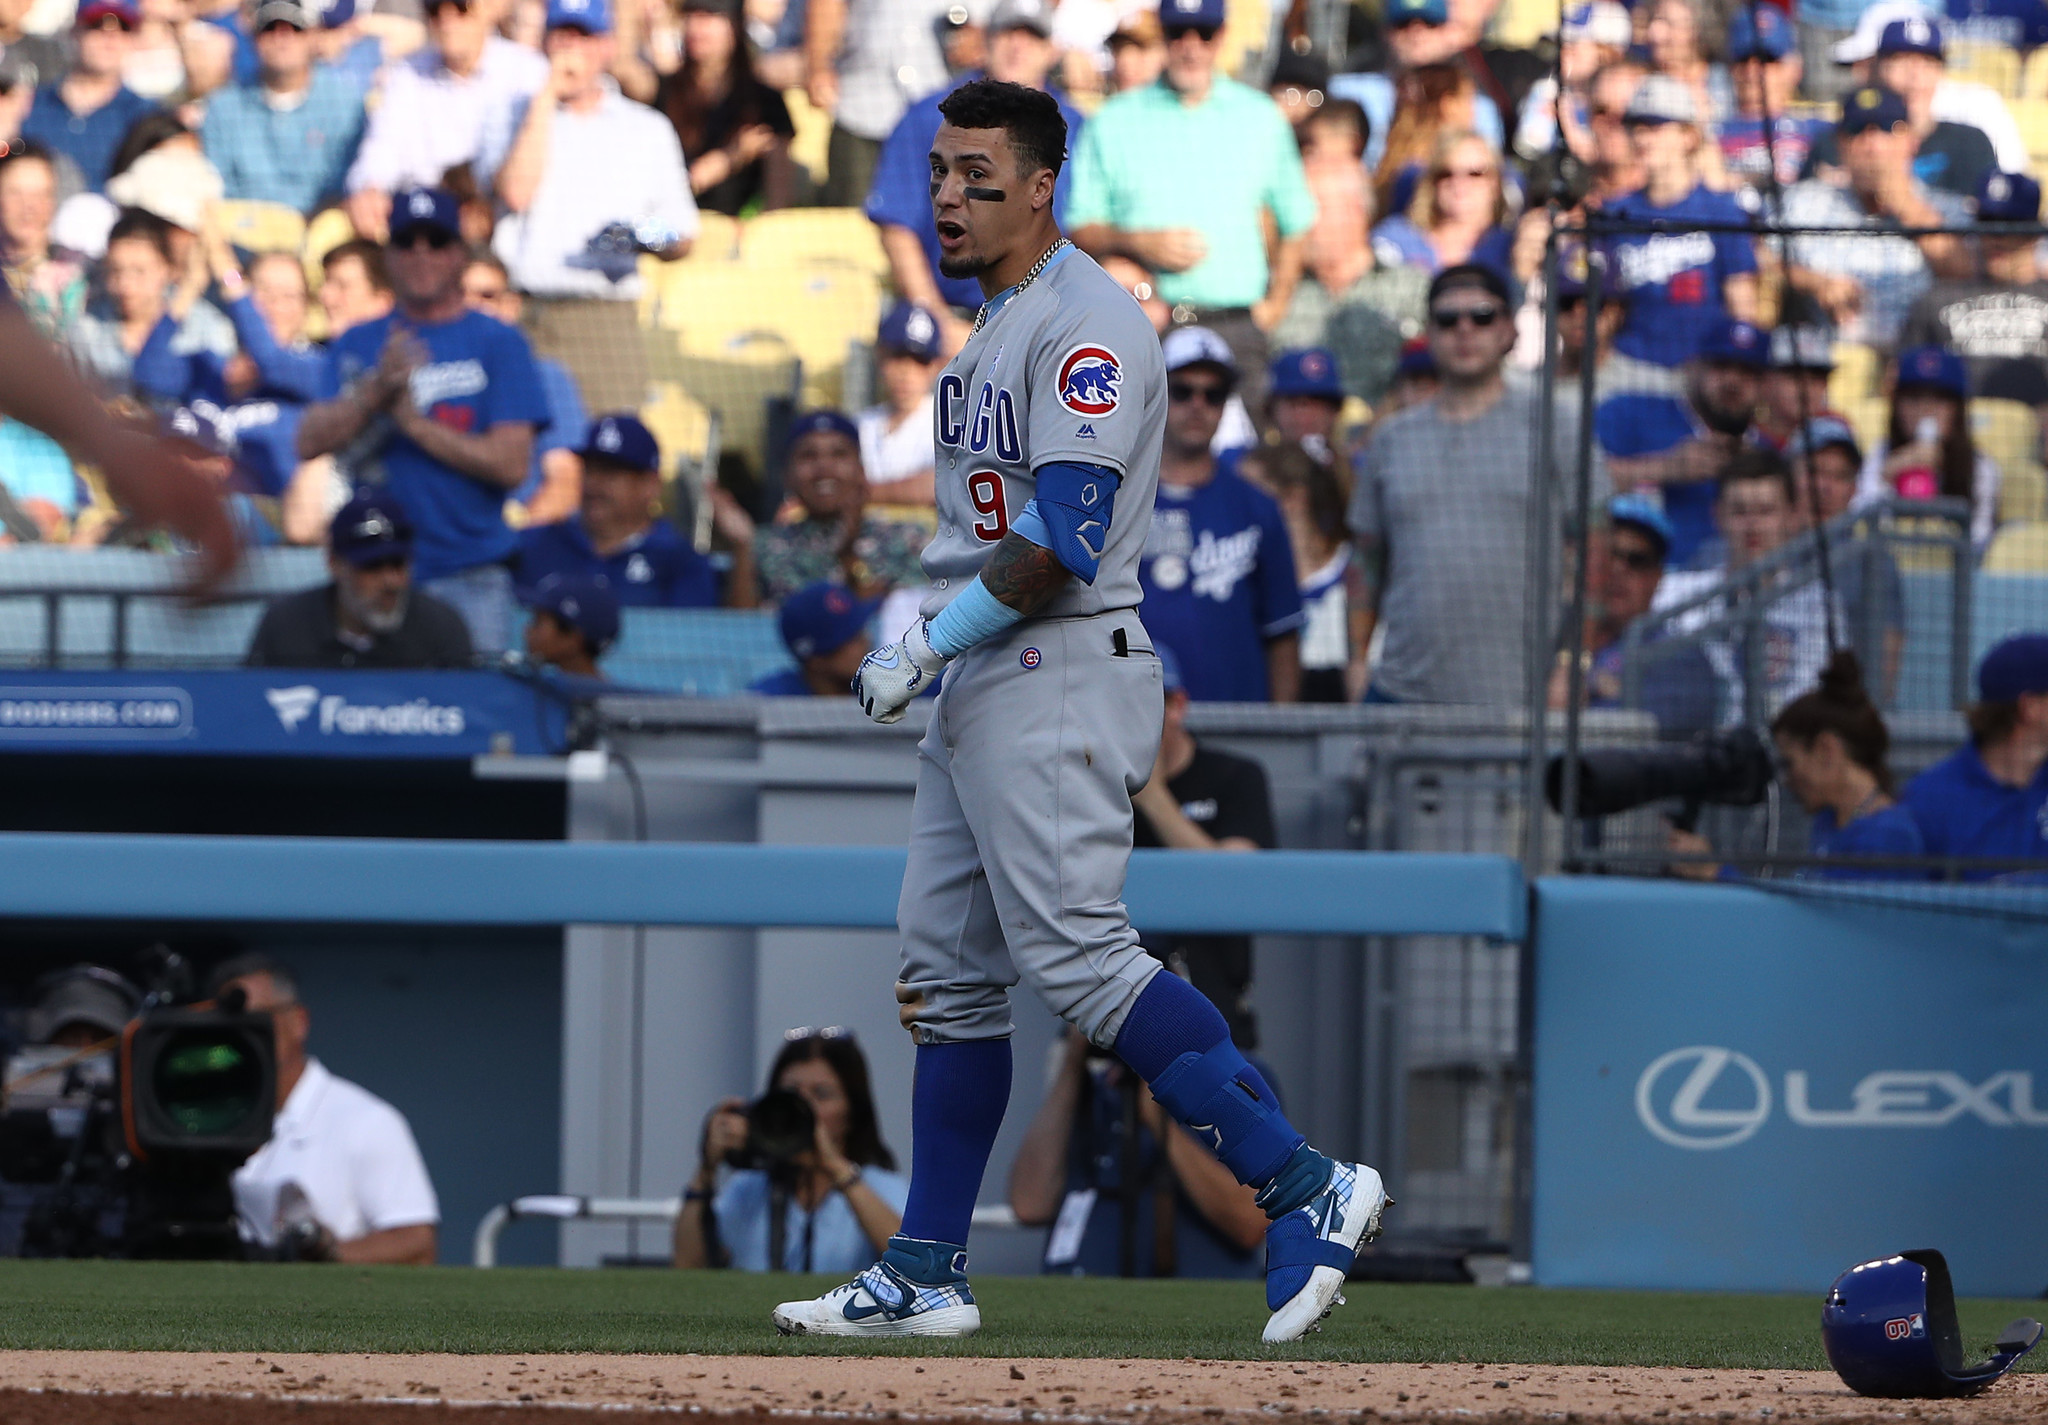 As the Cubs' grueling stretch rolls on, their road woes continue in a 3-2 loss to the Dodgers that ends a 2-5 trip